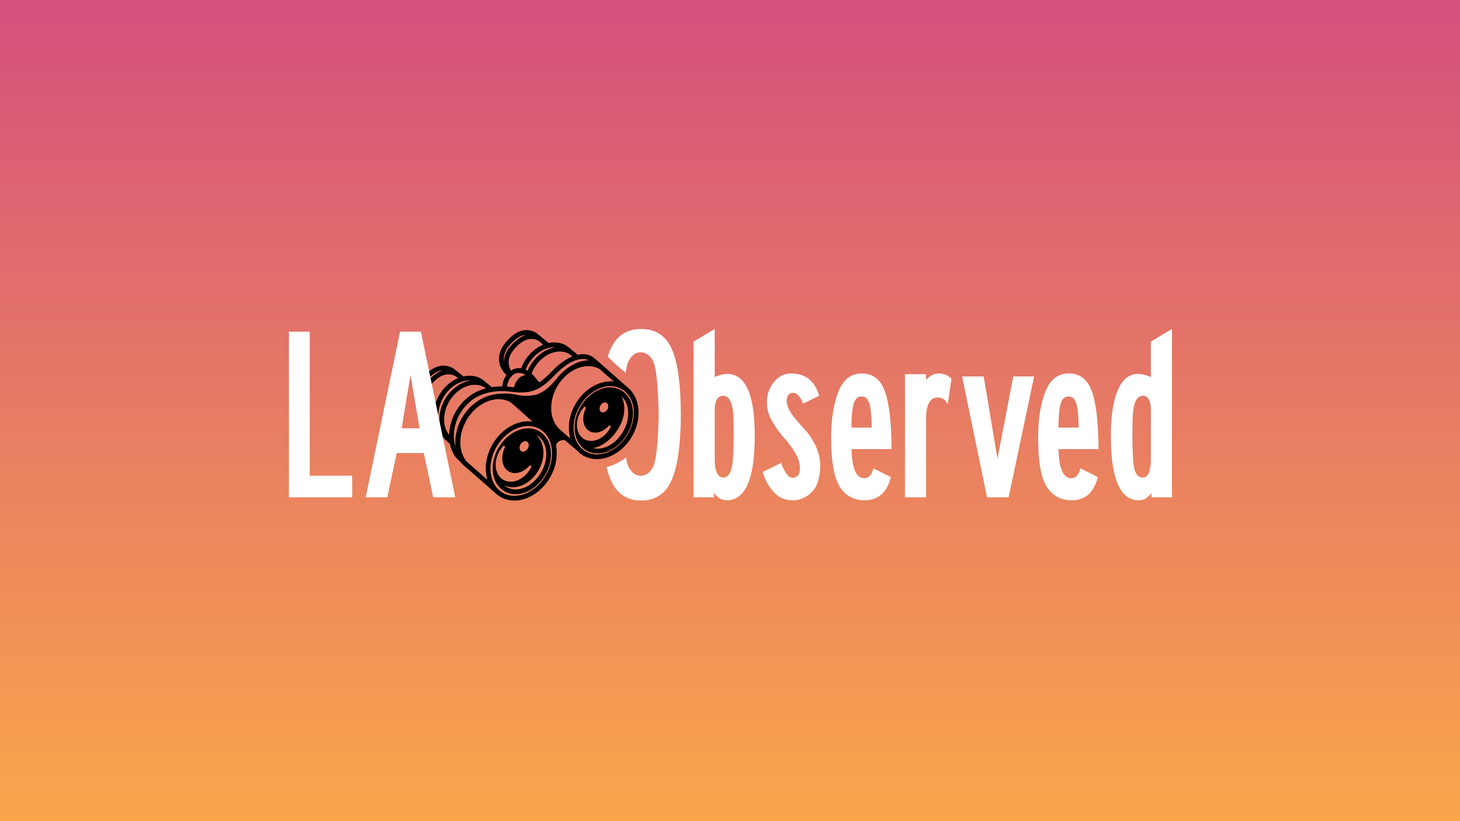 One of the owners of the LA Weekly is suing his partners, alleging mismanagement and even fraud. It is the latest snafu for the new ownership group that has never really been embraced by the alt-weekly's readership.